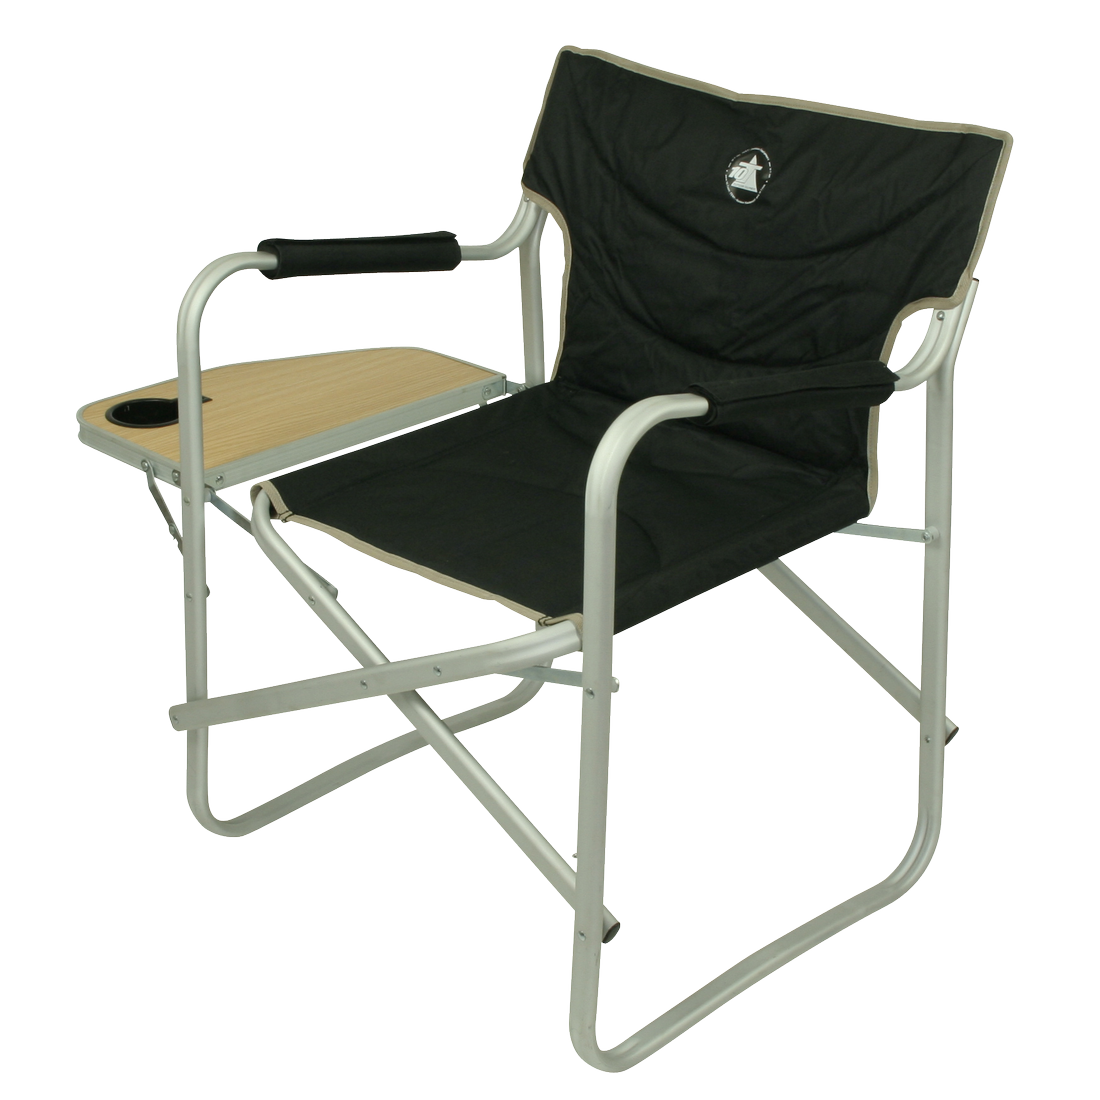 10T Stagedirector Aluminium Camping Chair Director S Chair With Side Pocke